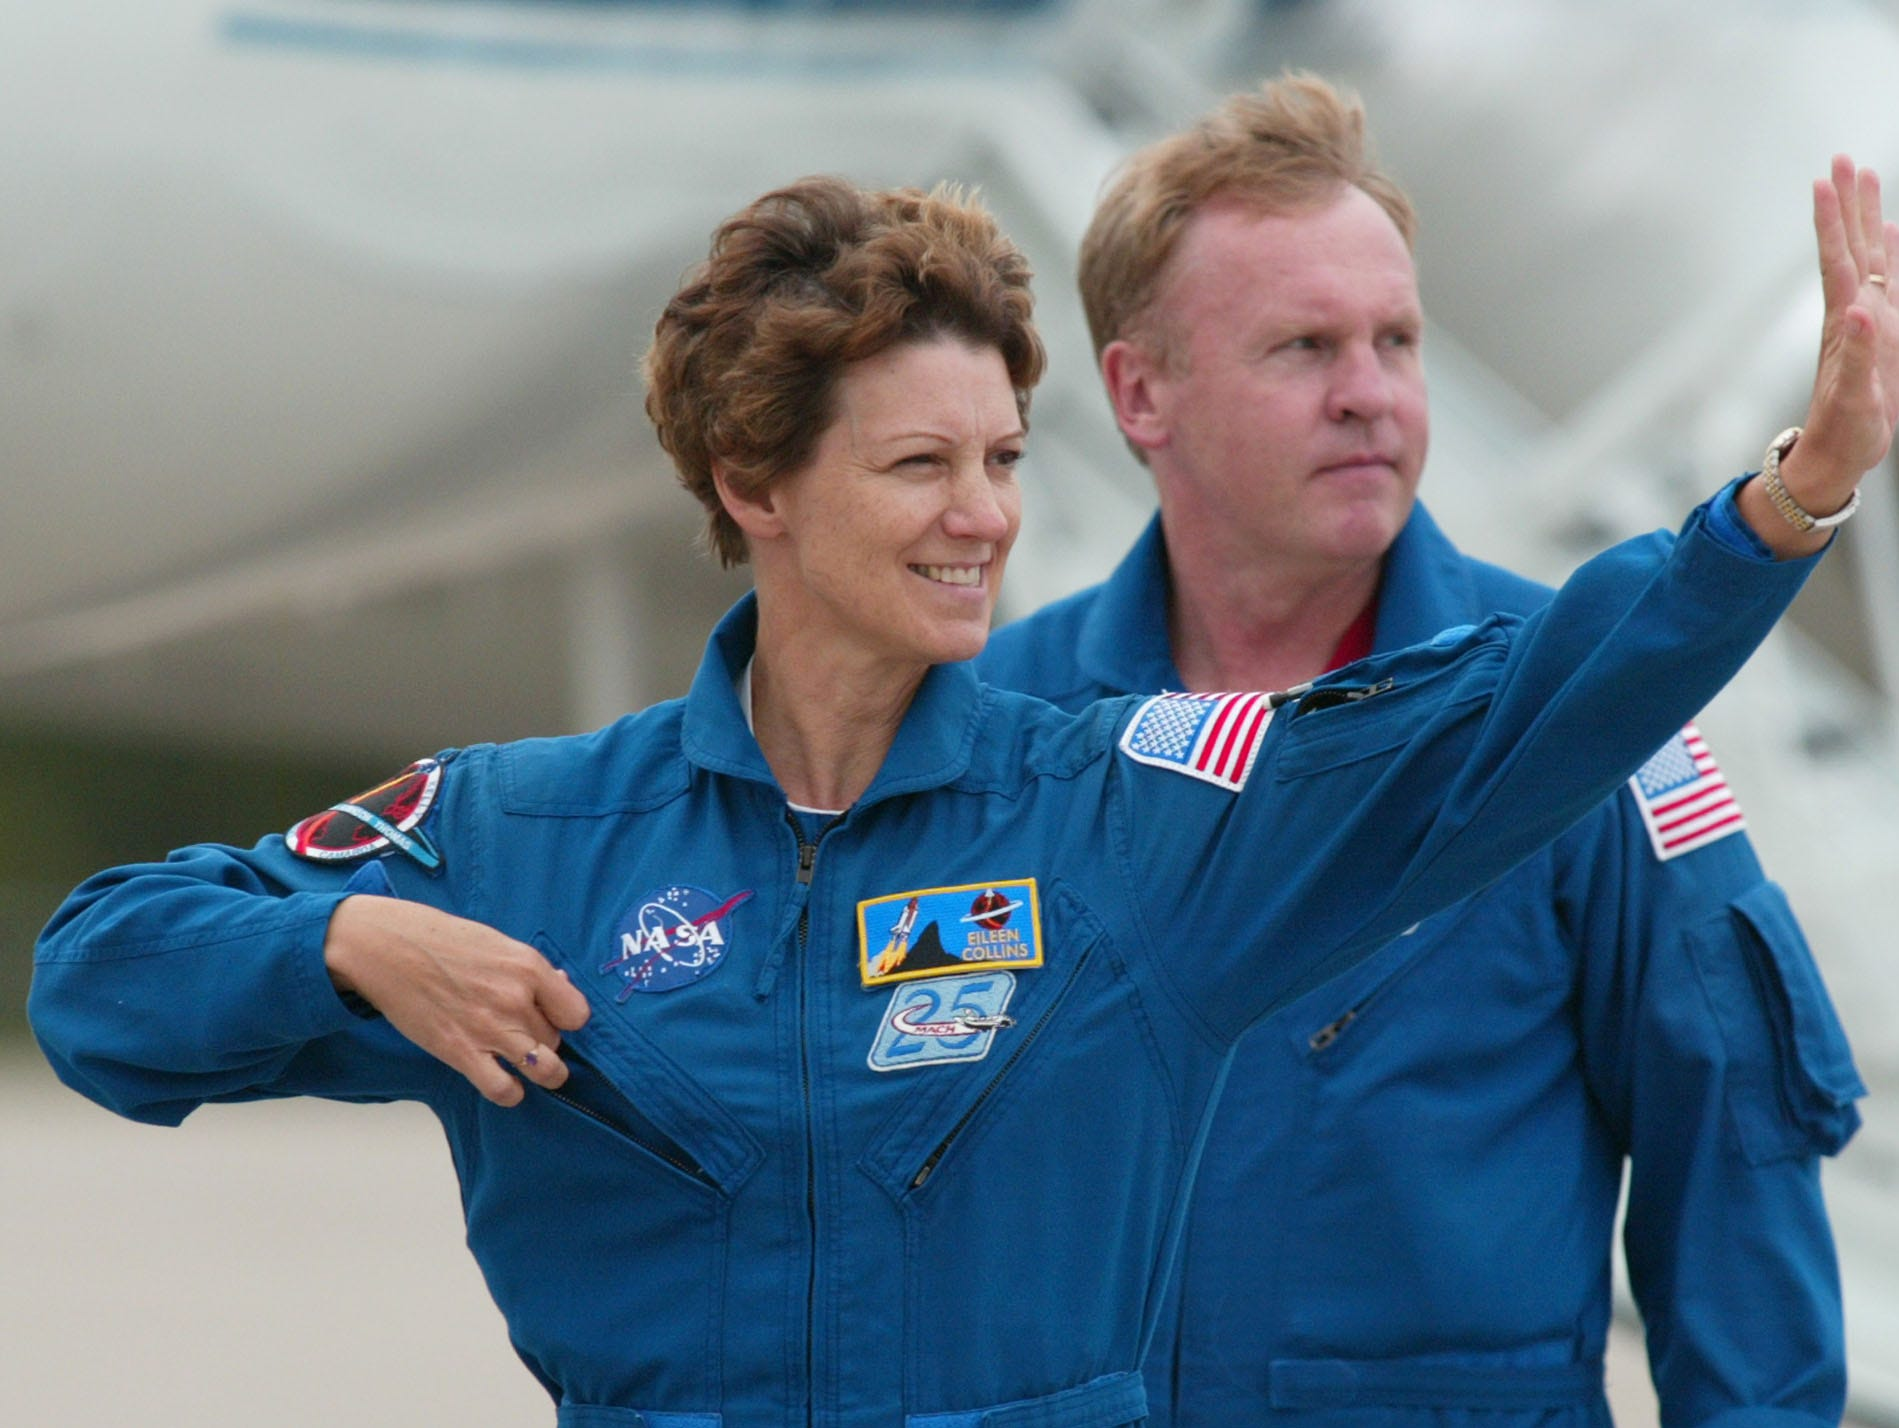 Space Shuttle Commander Eileen Collins, born in Elmira,  waves to the media as she arrives at the Kennedy Space Center with Austrailian born astronaut Andrew Thomas following her, Saturday, July 9, 2005 Cape Canaveral, Fla.